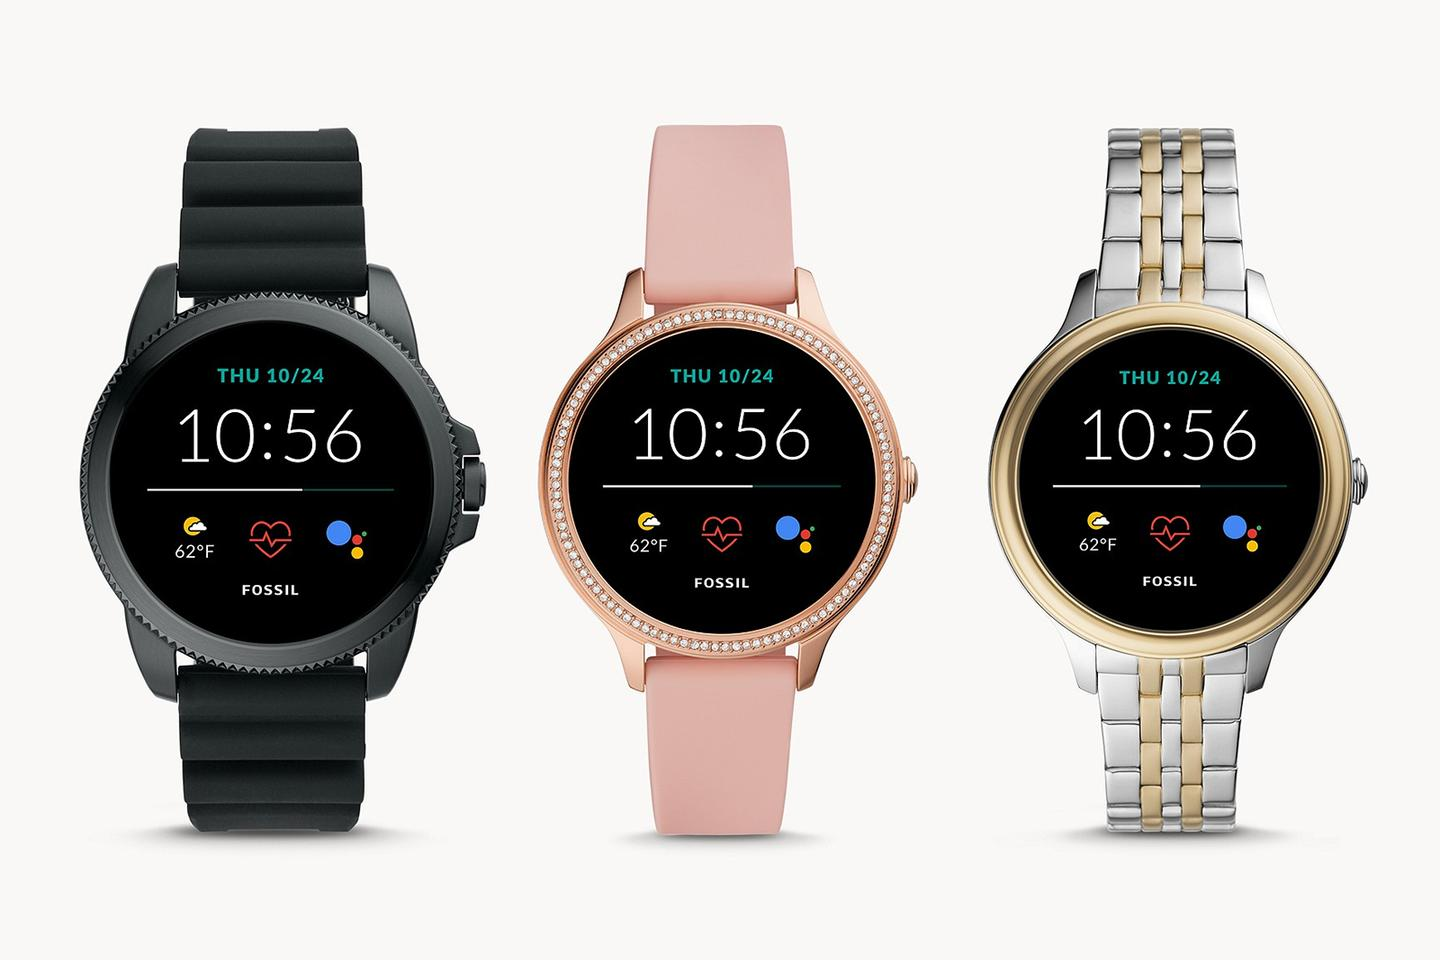 The new Fossil smartwatches come in seven different styles